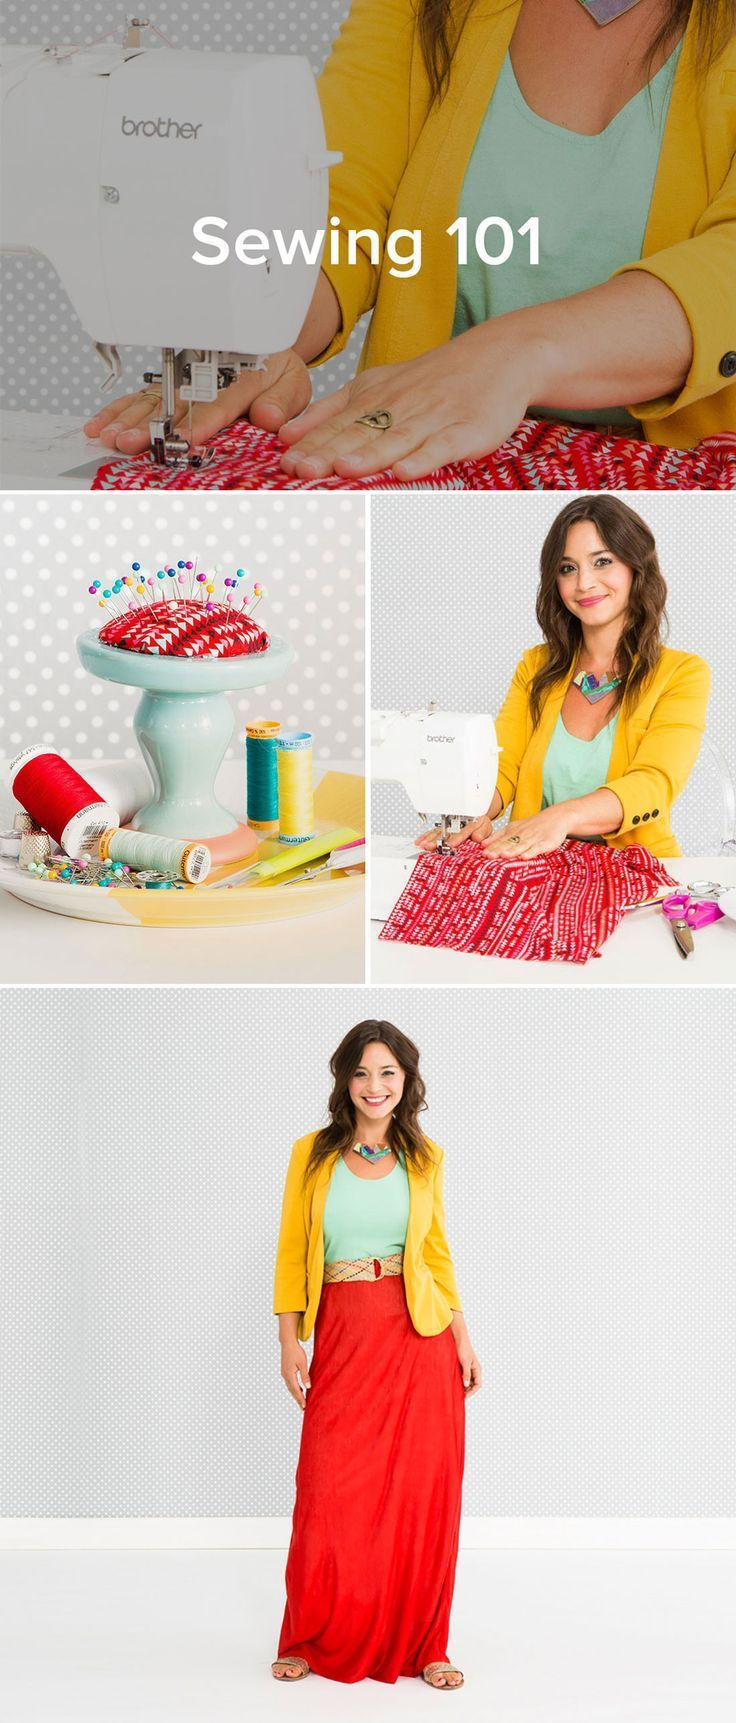 Sewing 101 for those of you who want easy to follow diy tutorials check out this Class from Brit Co. You get a fabulous pattern, video lessons and helpful technique. Learn how to sew! Ideas for crafts to make and sell